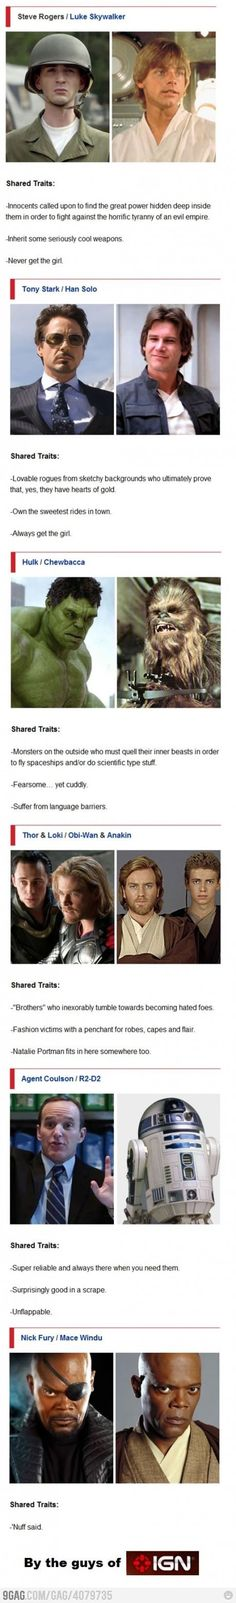 Star Wars marvel characters